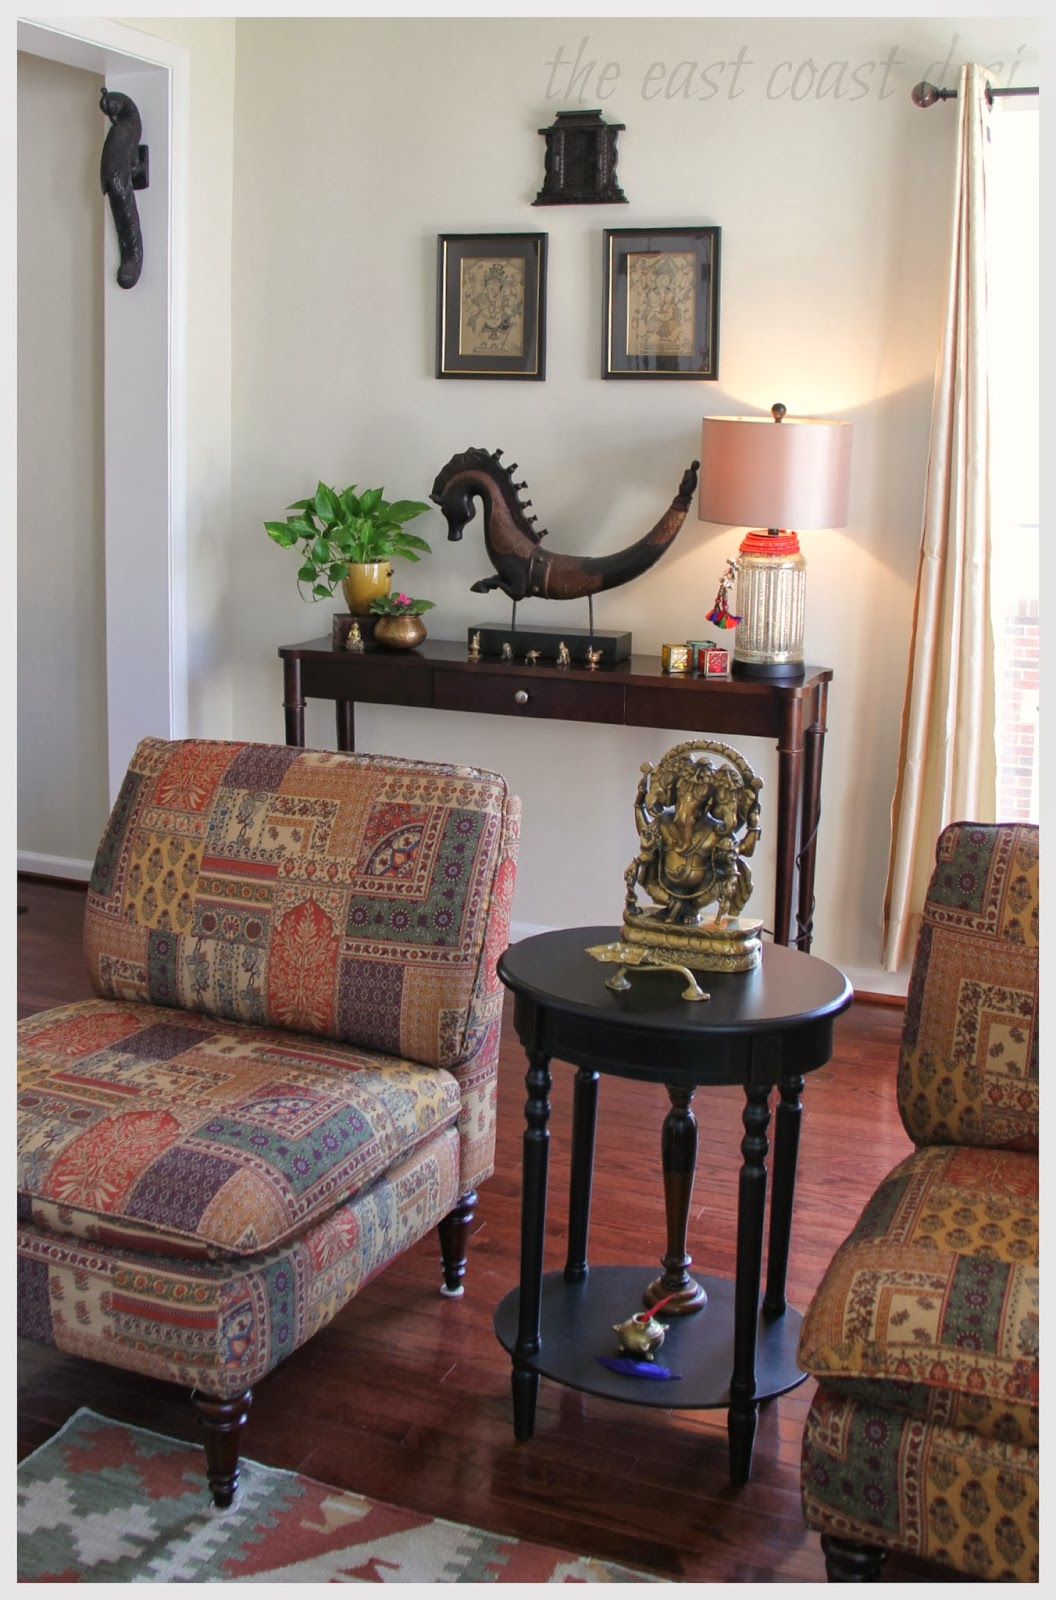 Interior Design Ideas For Living Rooms: The East Coast Desi: My Living Room A Reflection Of INDIA